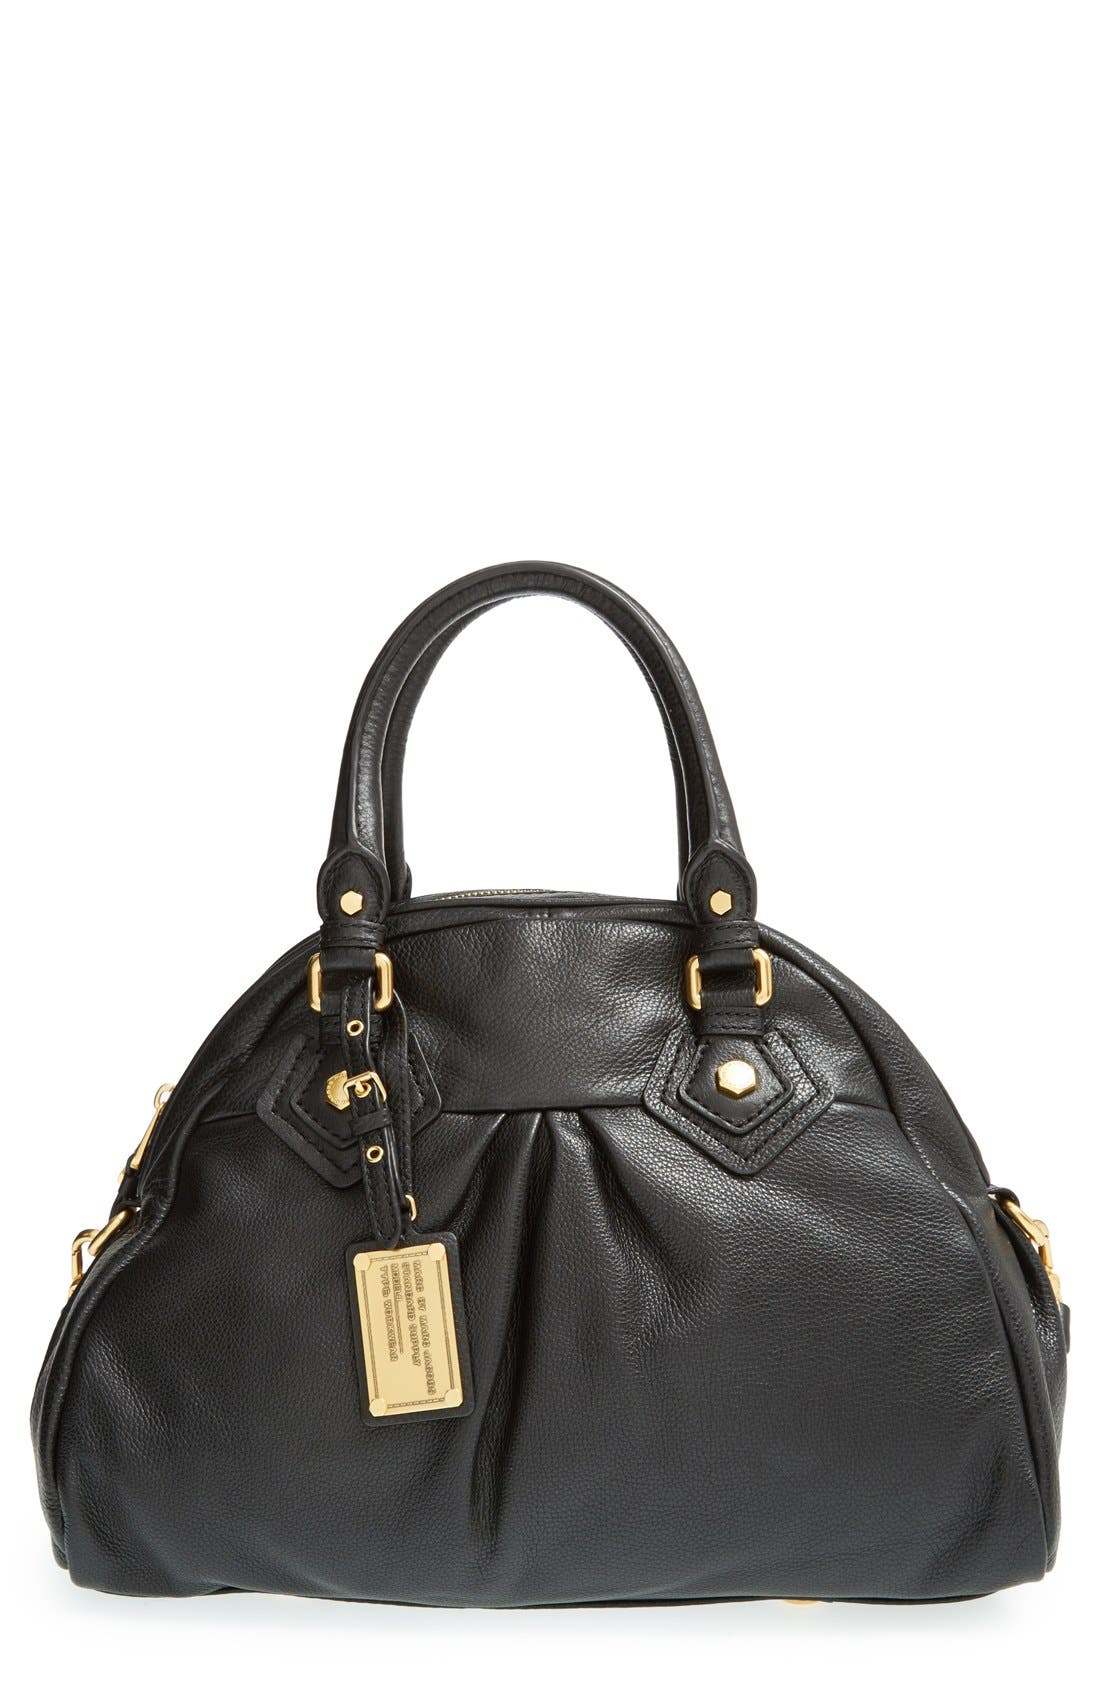 MARC BY MARC JACOBS 'Baby Aidan' Satchel,                         Main,                         color, 001